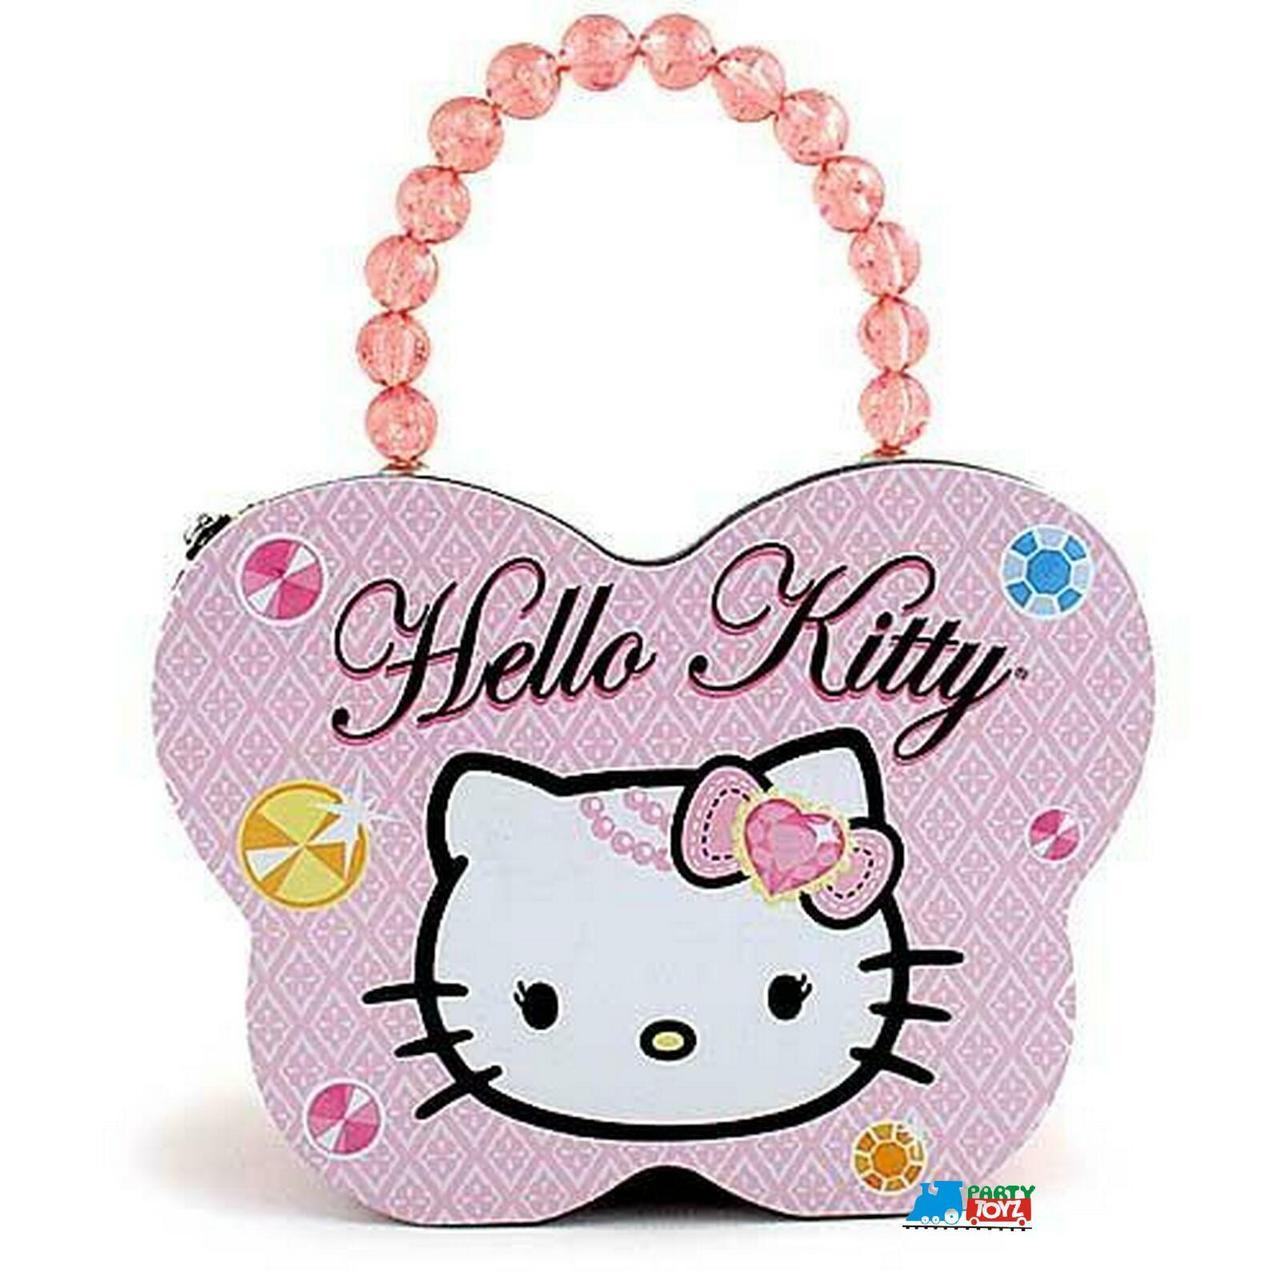 Hello Kitty Tin Stationery Clutch Beaded Butterfly Purse - Pink